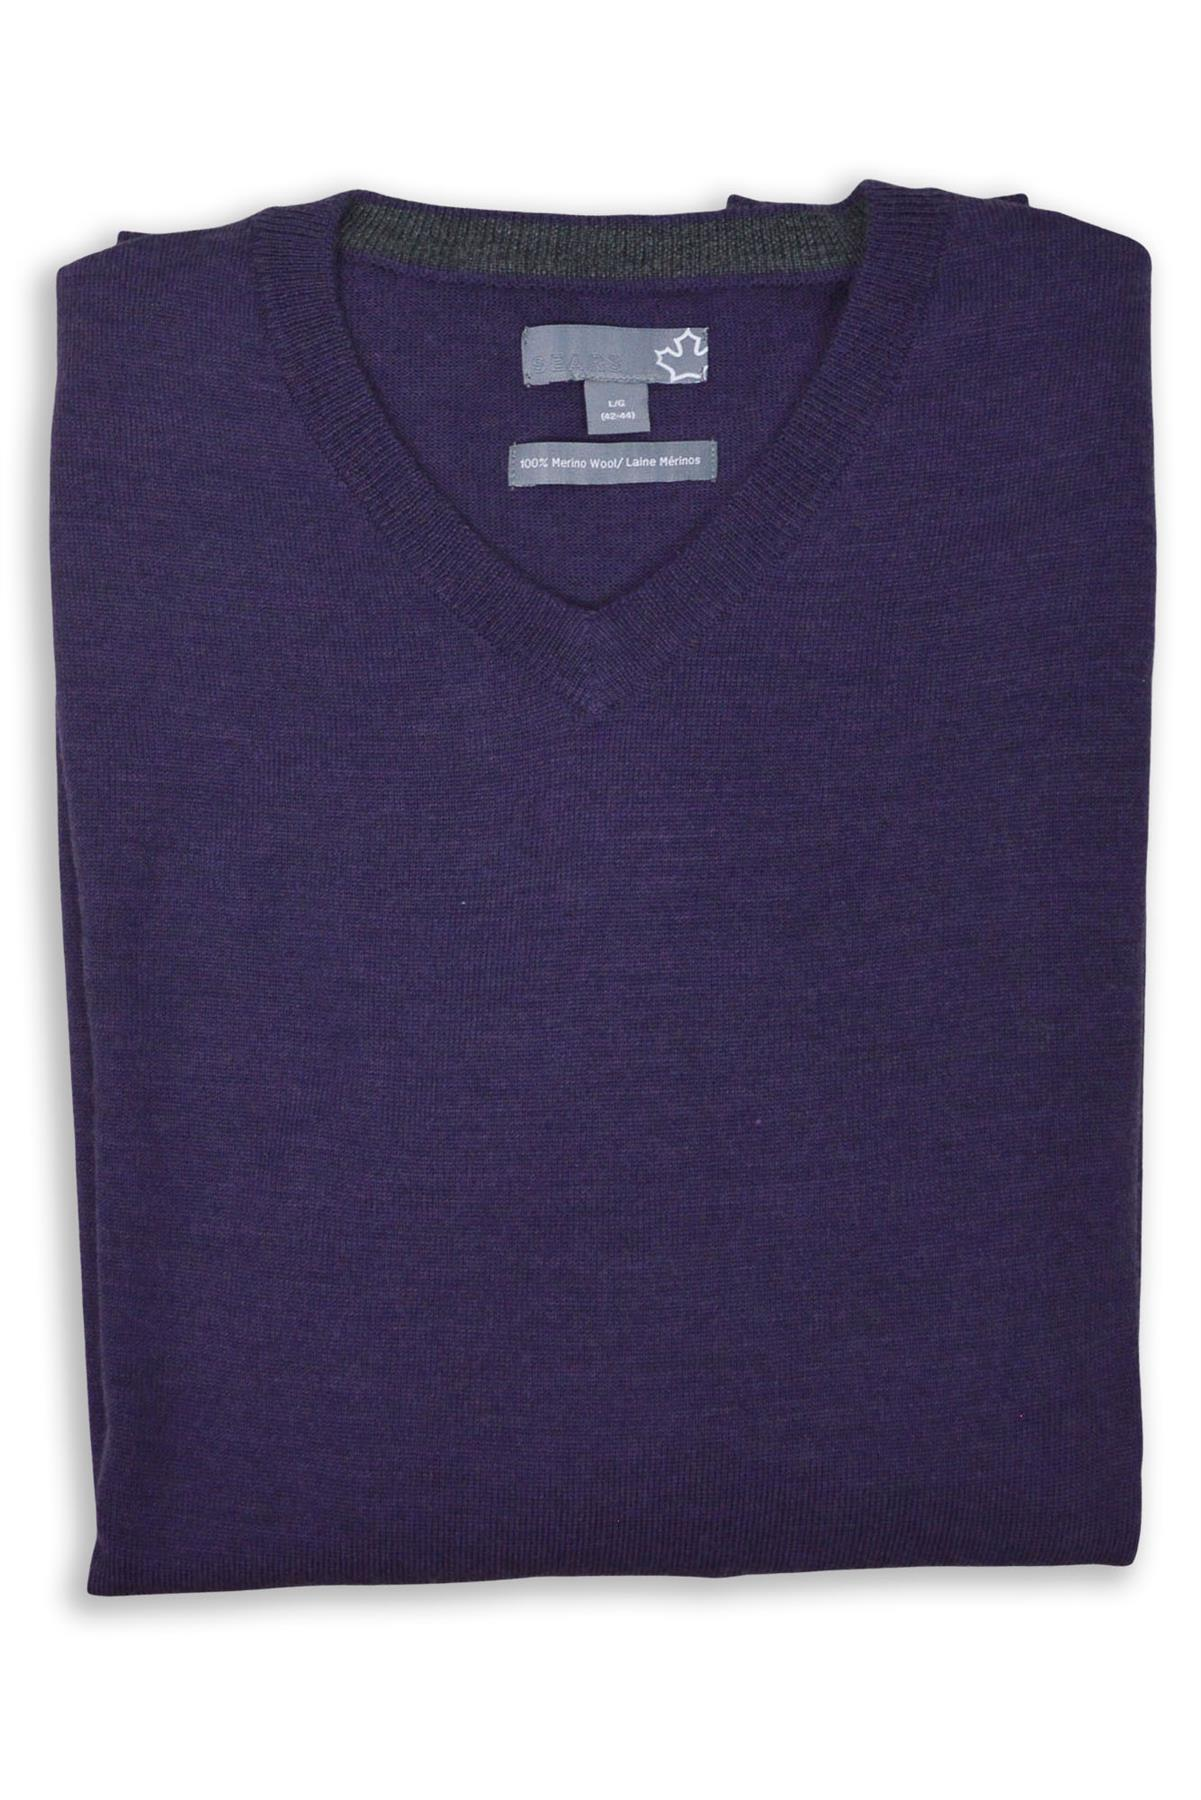 SEARS-Mens-Pure-Merino-Wool-V-Neck-Jumper-Pullover-Super-Quality thumbnail 12